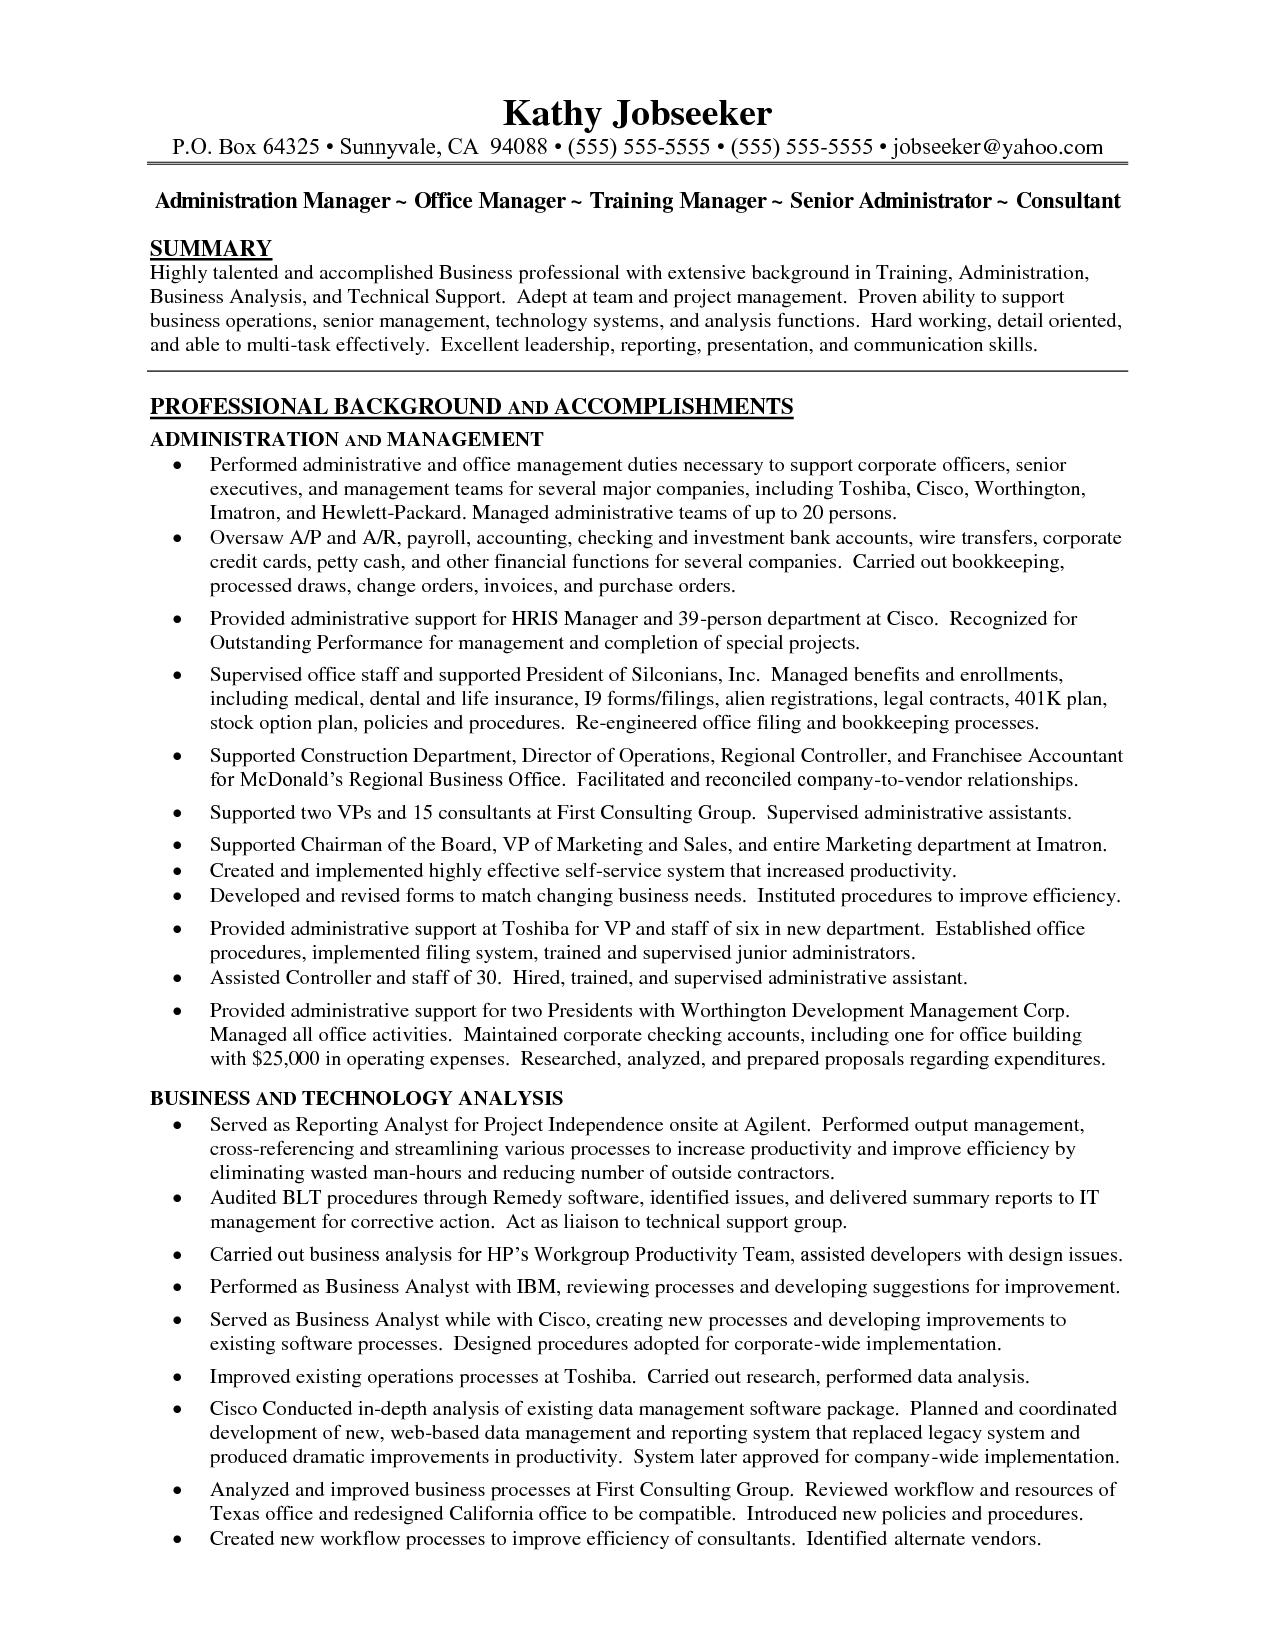 Dental Office Manager Resume Template